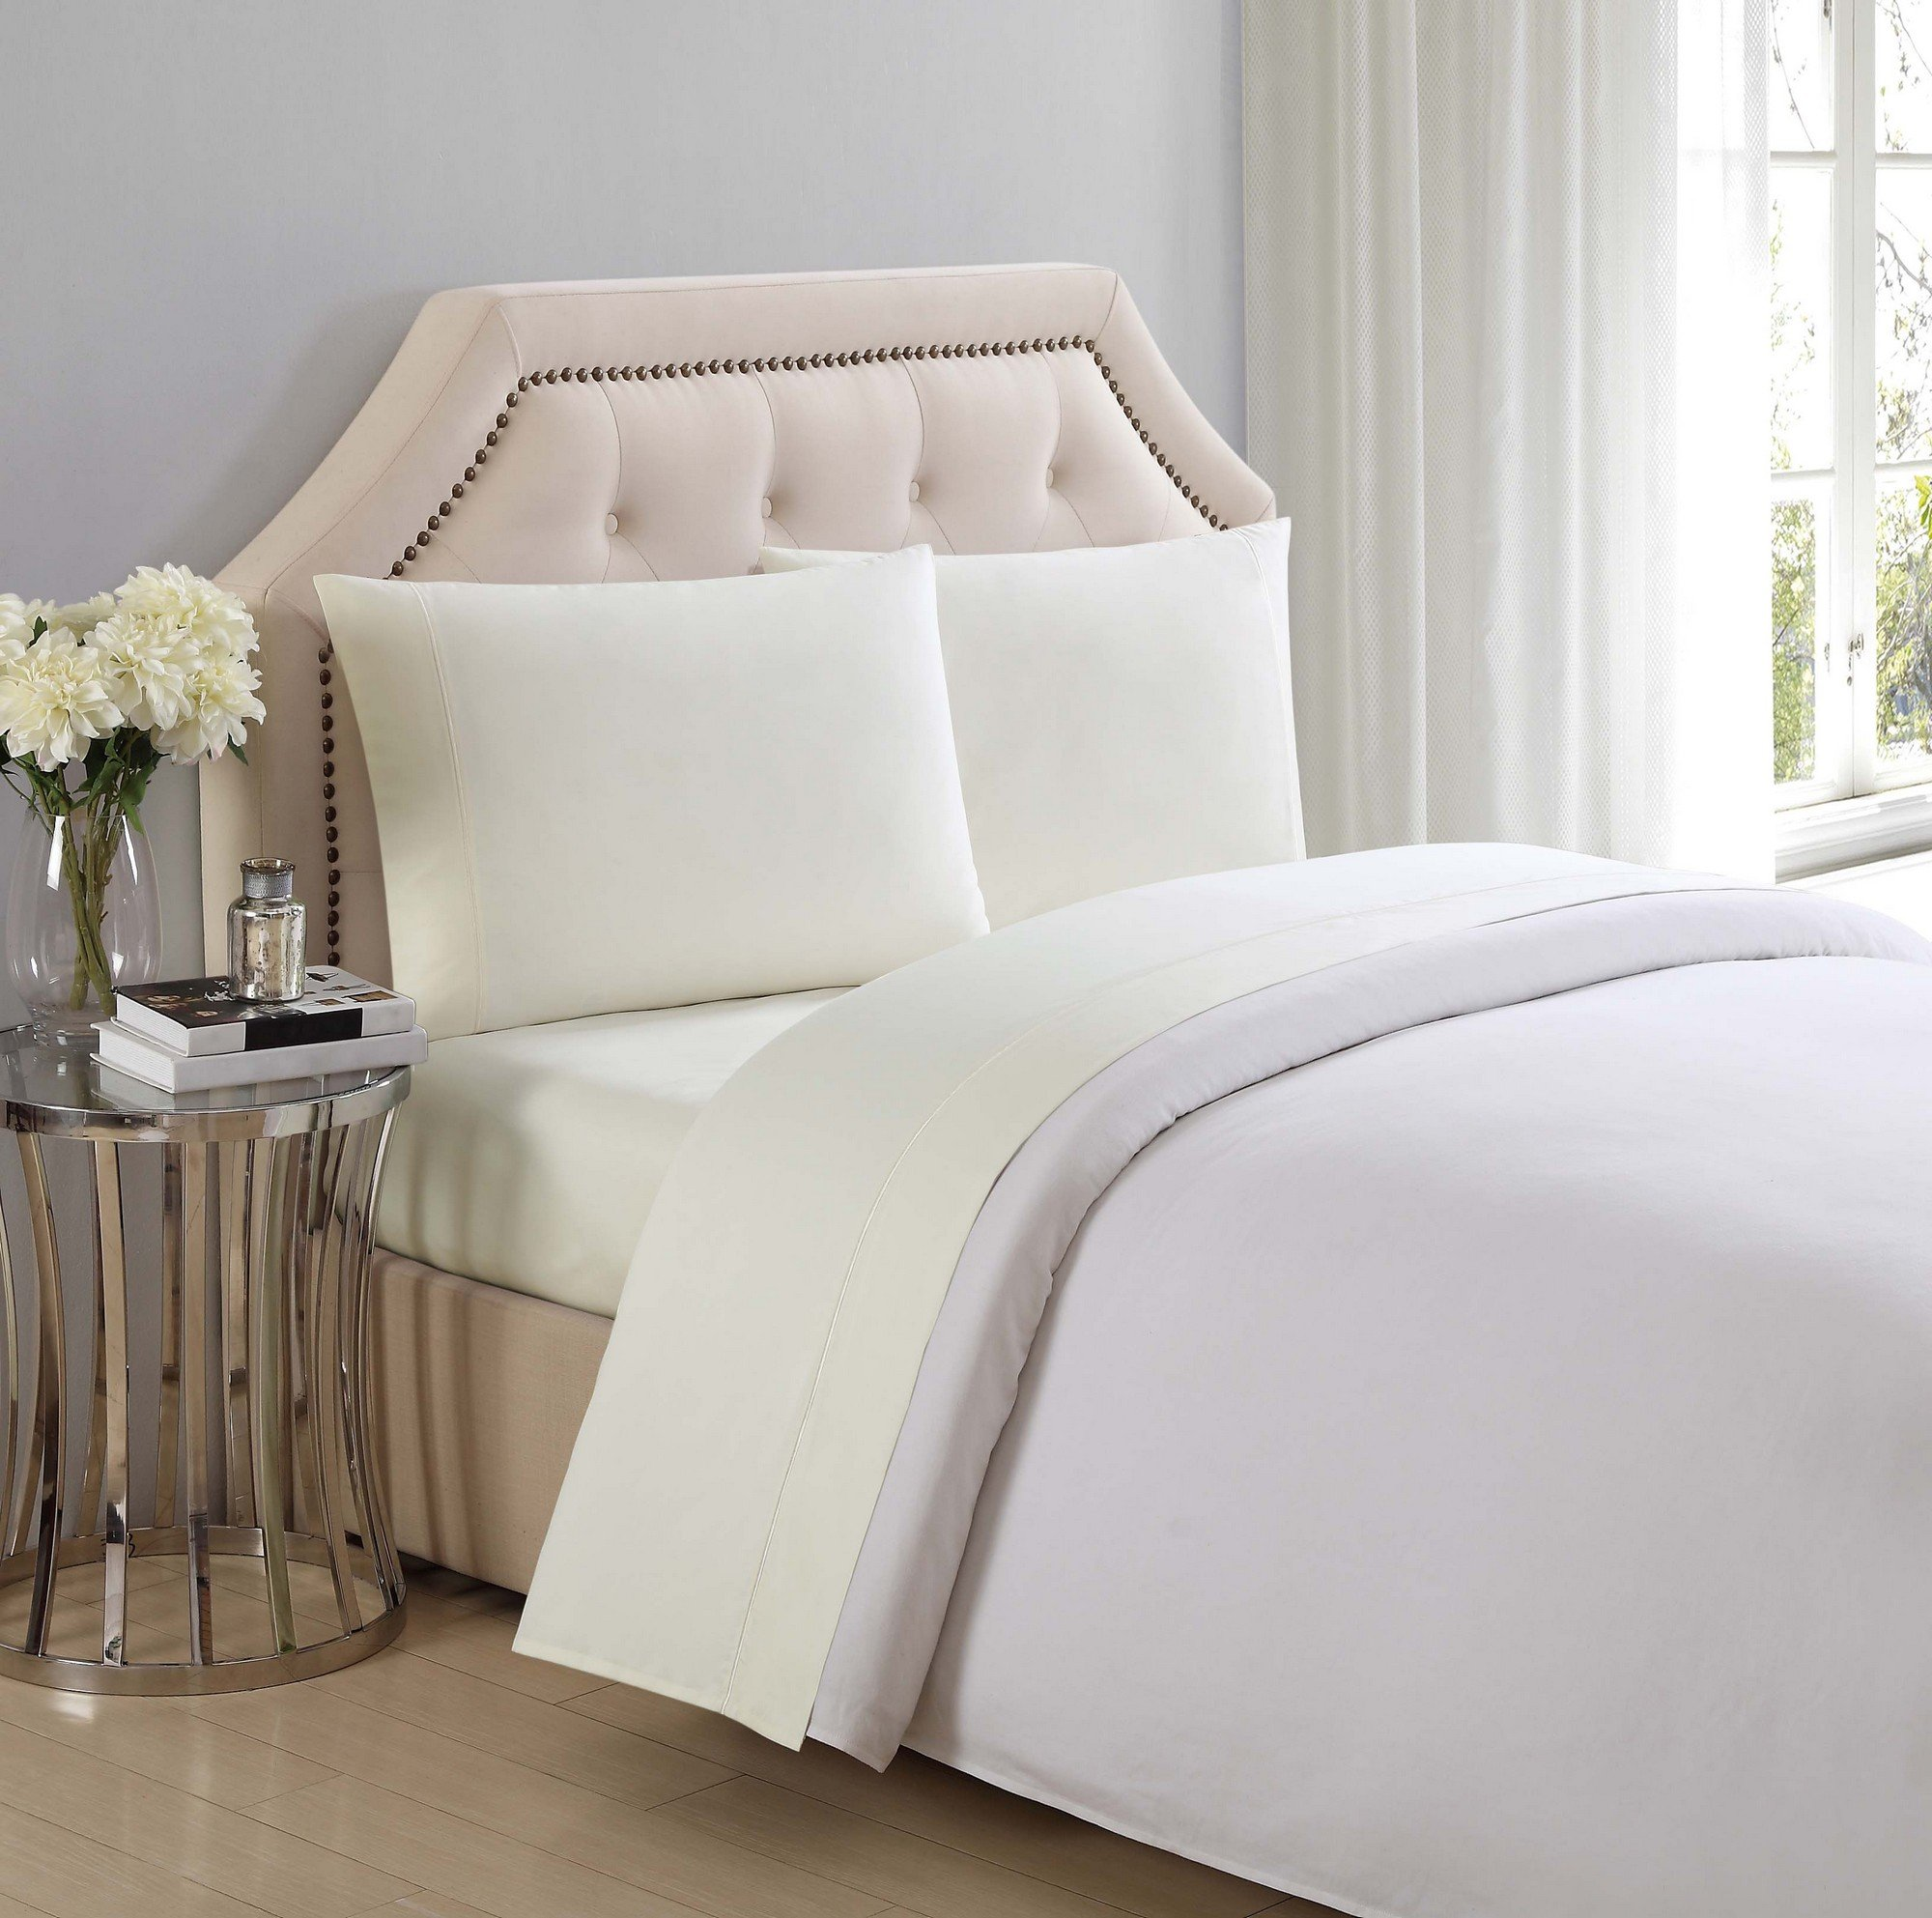 Charisma 310 Thread Count Classic Solid Cotton Sateen King Pillowcase Pair in Sweet Corn